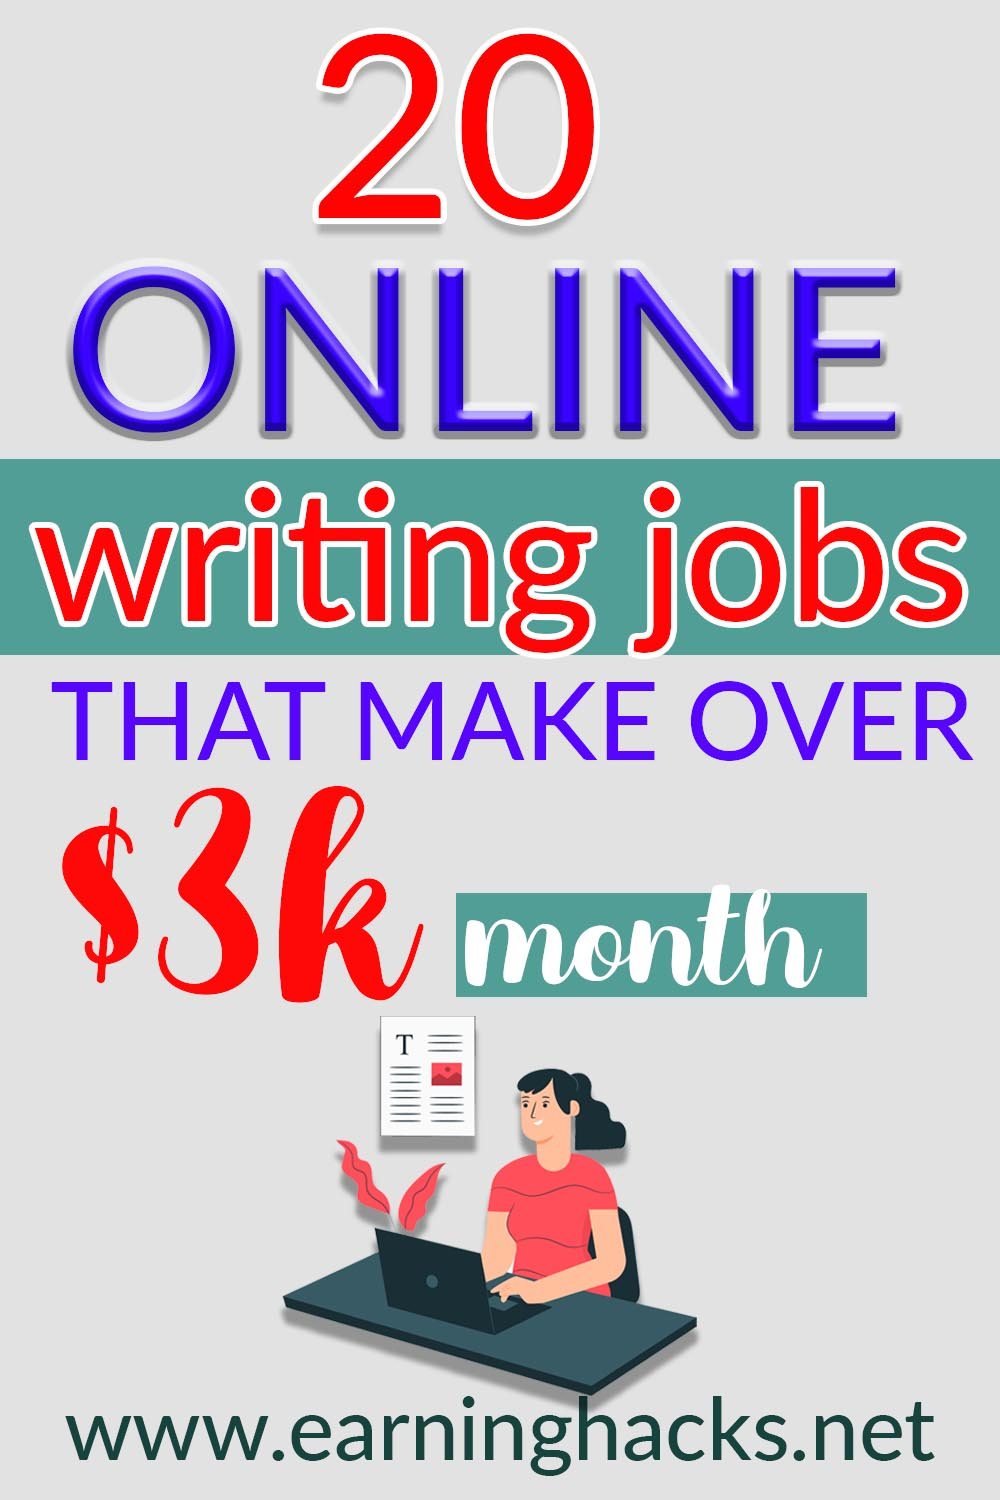 20 Online Writing Jobs That Make Over $3k month